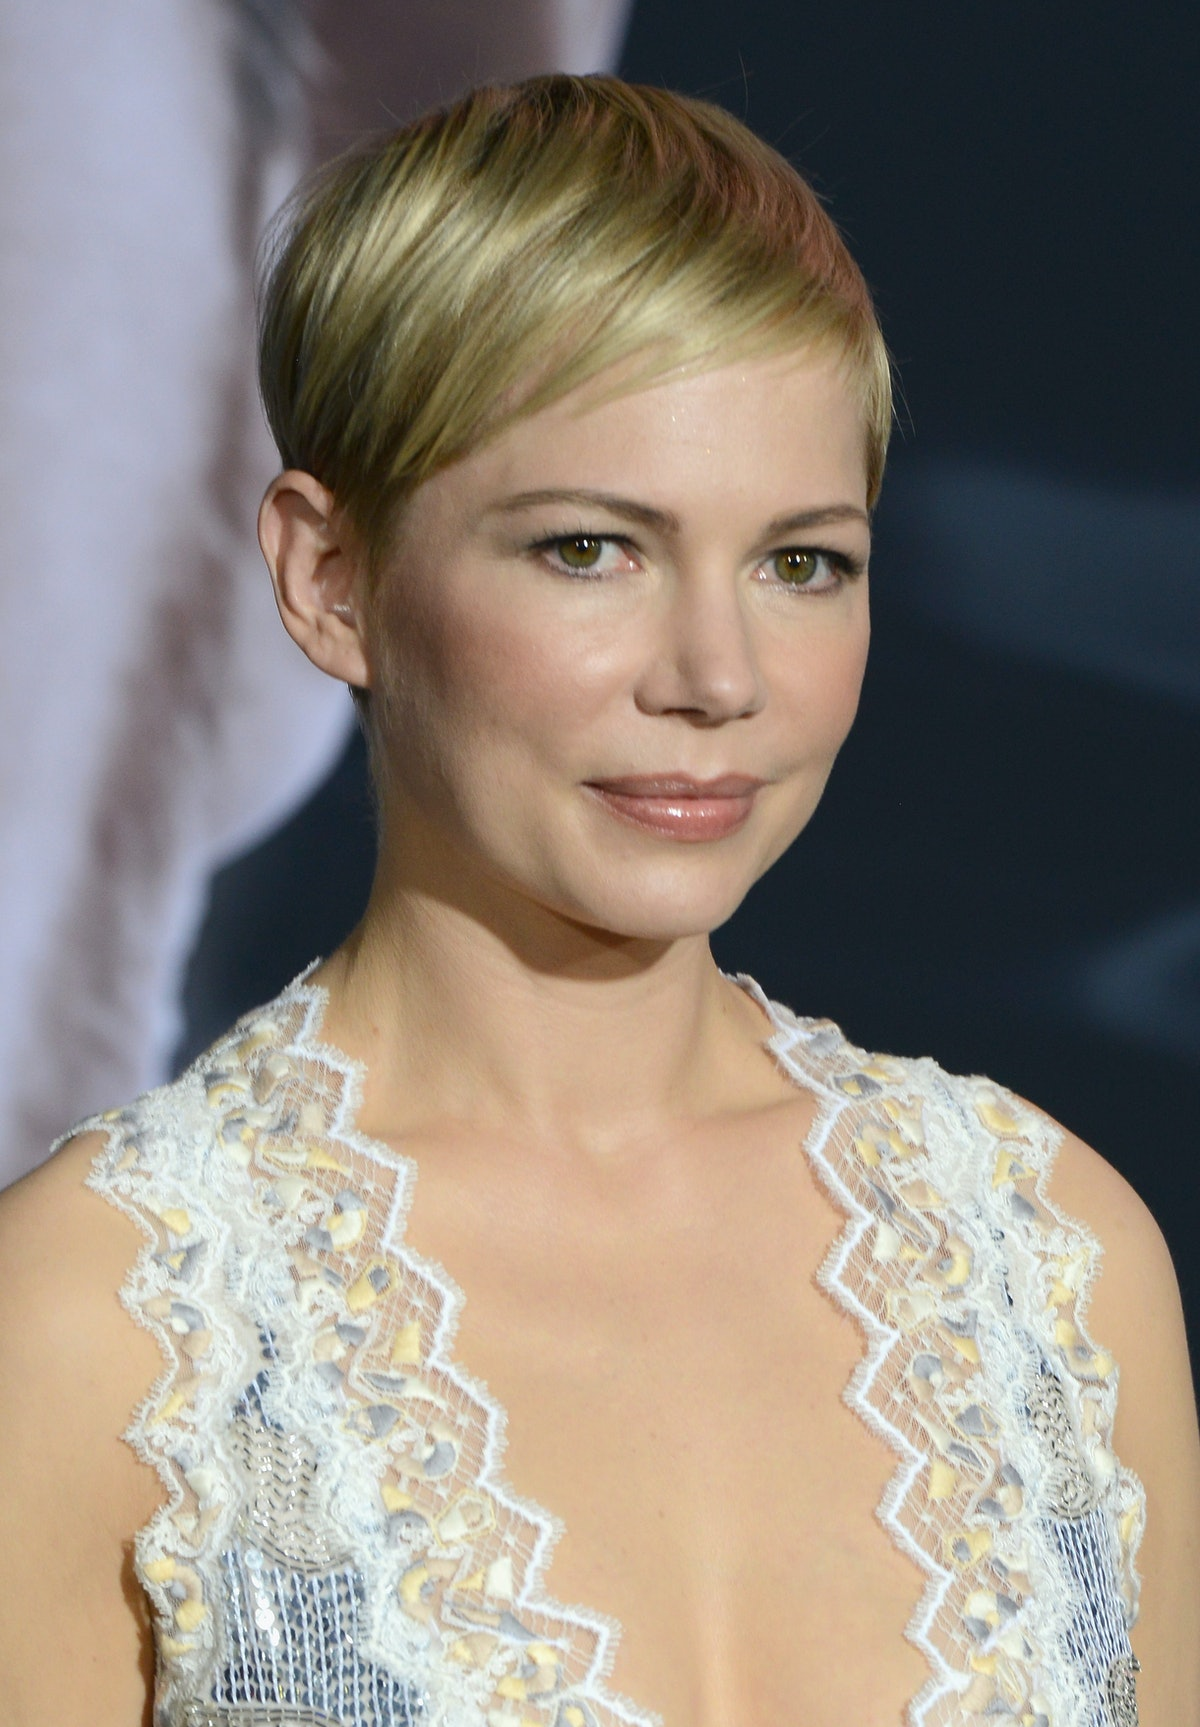 Michelle Williams sports her iconic pixie cut at the premiere of Venom.